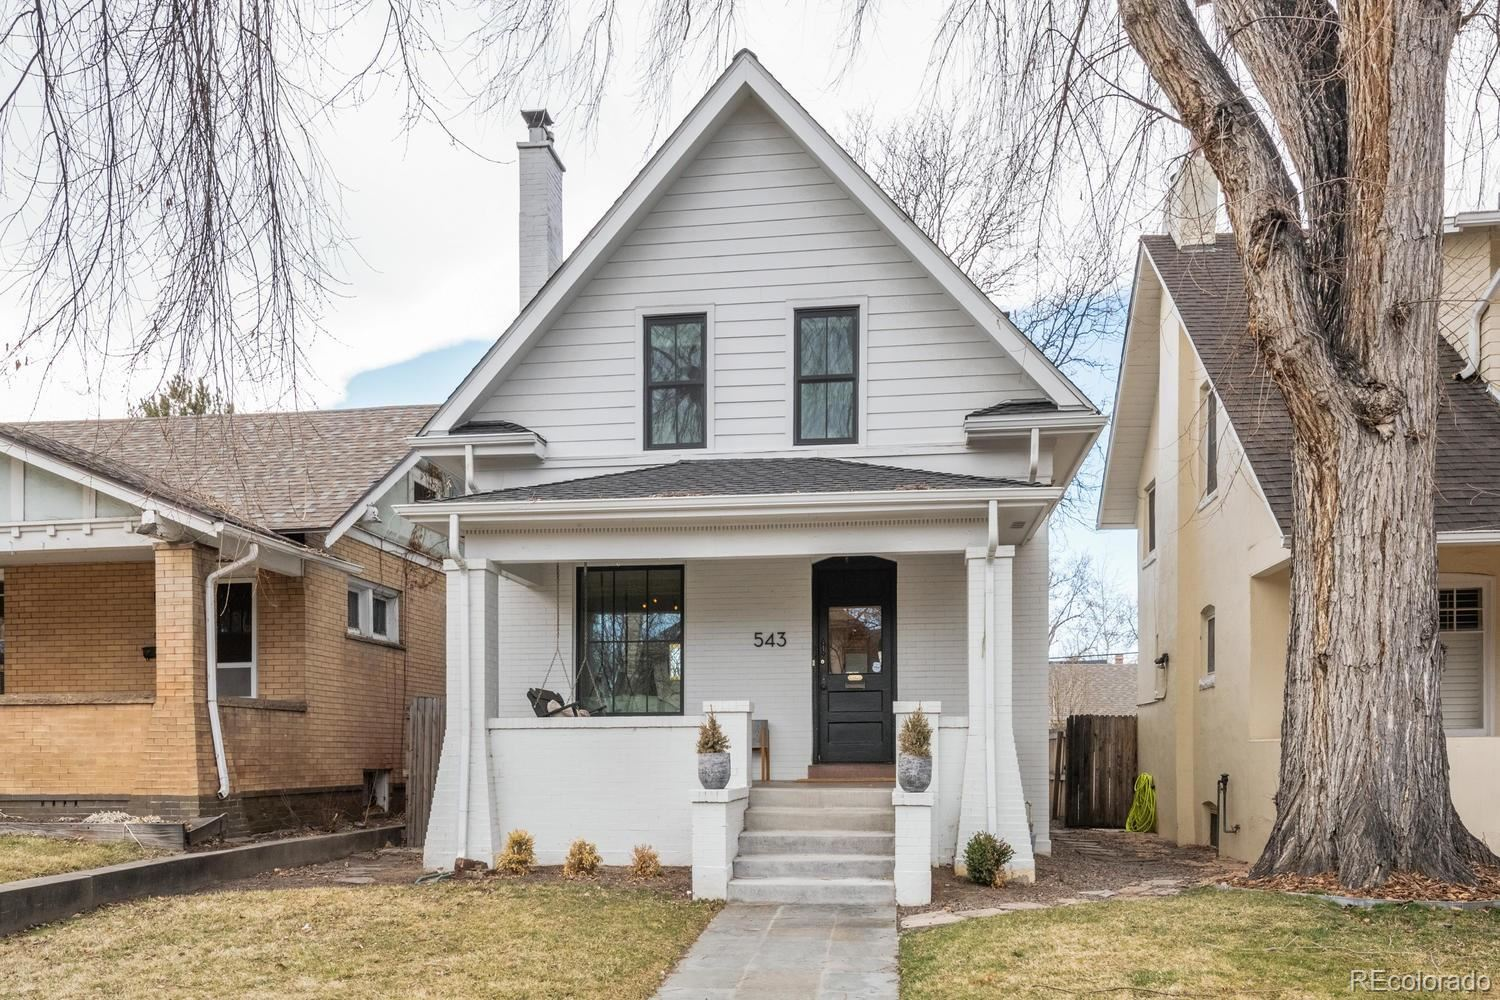 543 N Humboldt Street, Denver, CO 80218 - #: 3494766